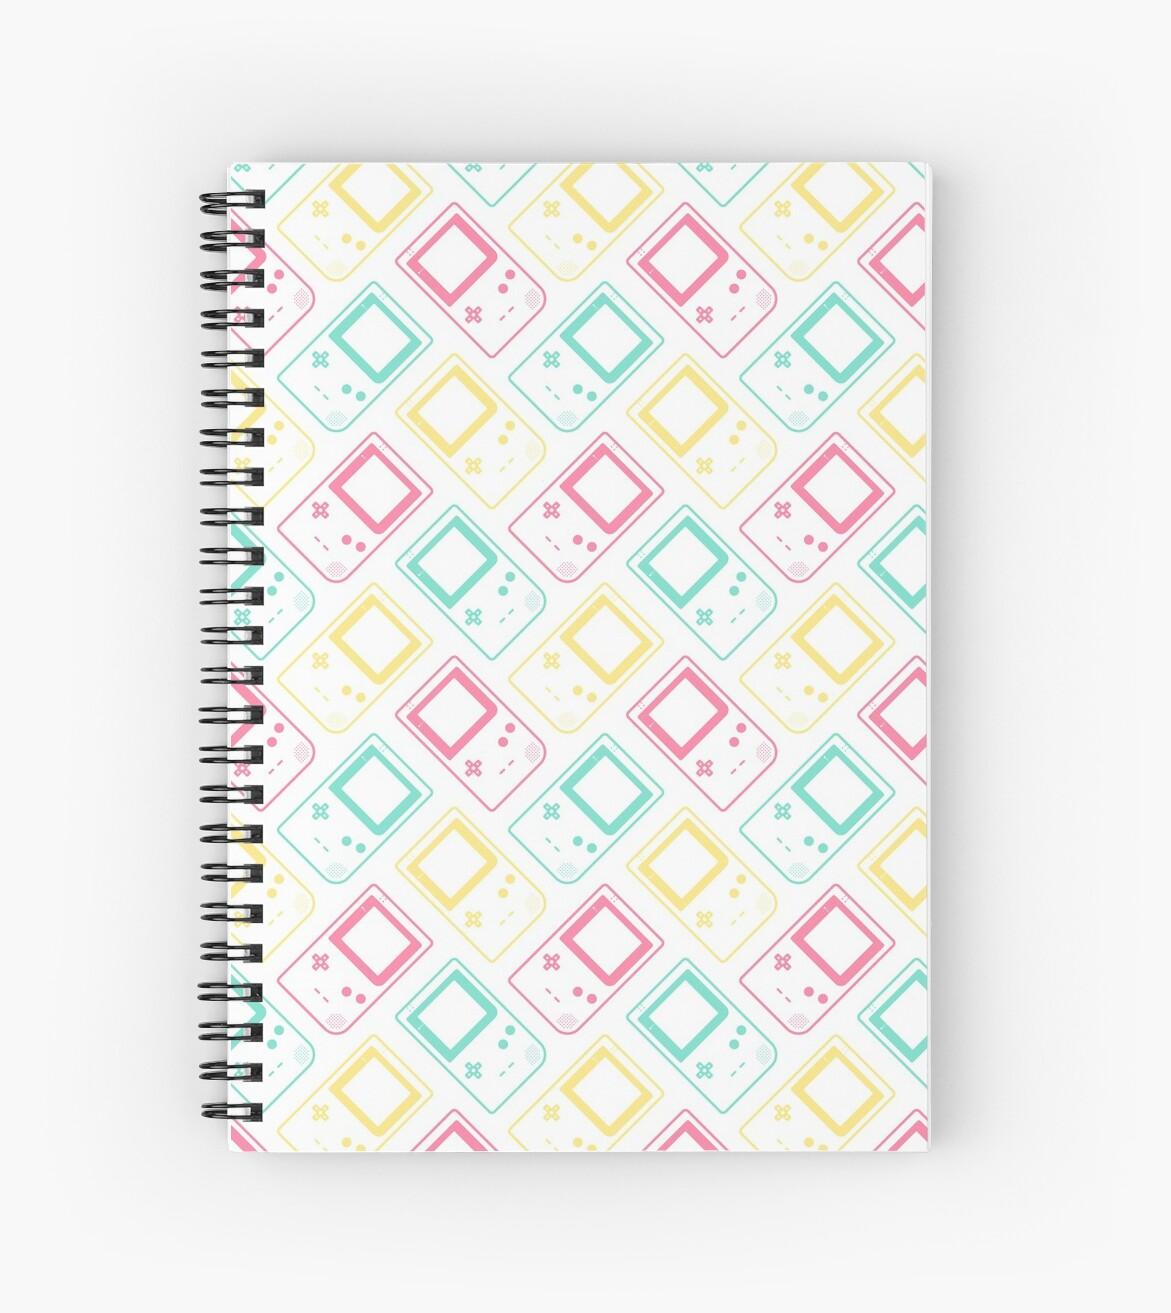 Gameboy Pocket Outlines Summer (white) by animinimal